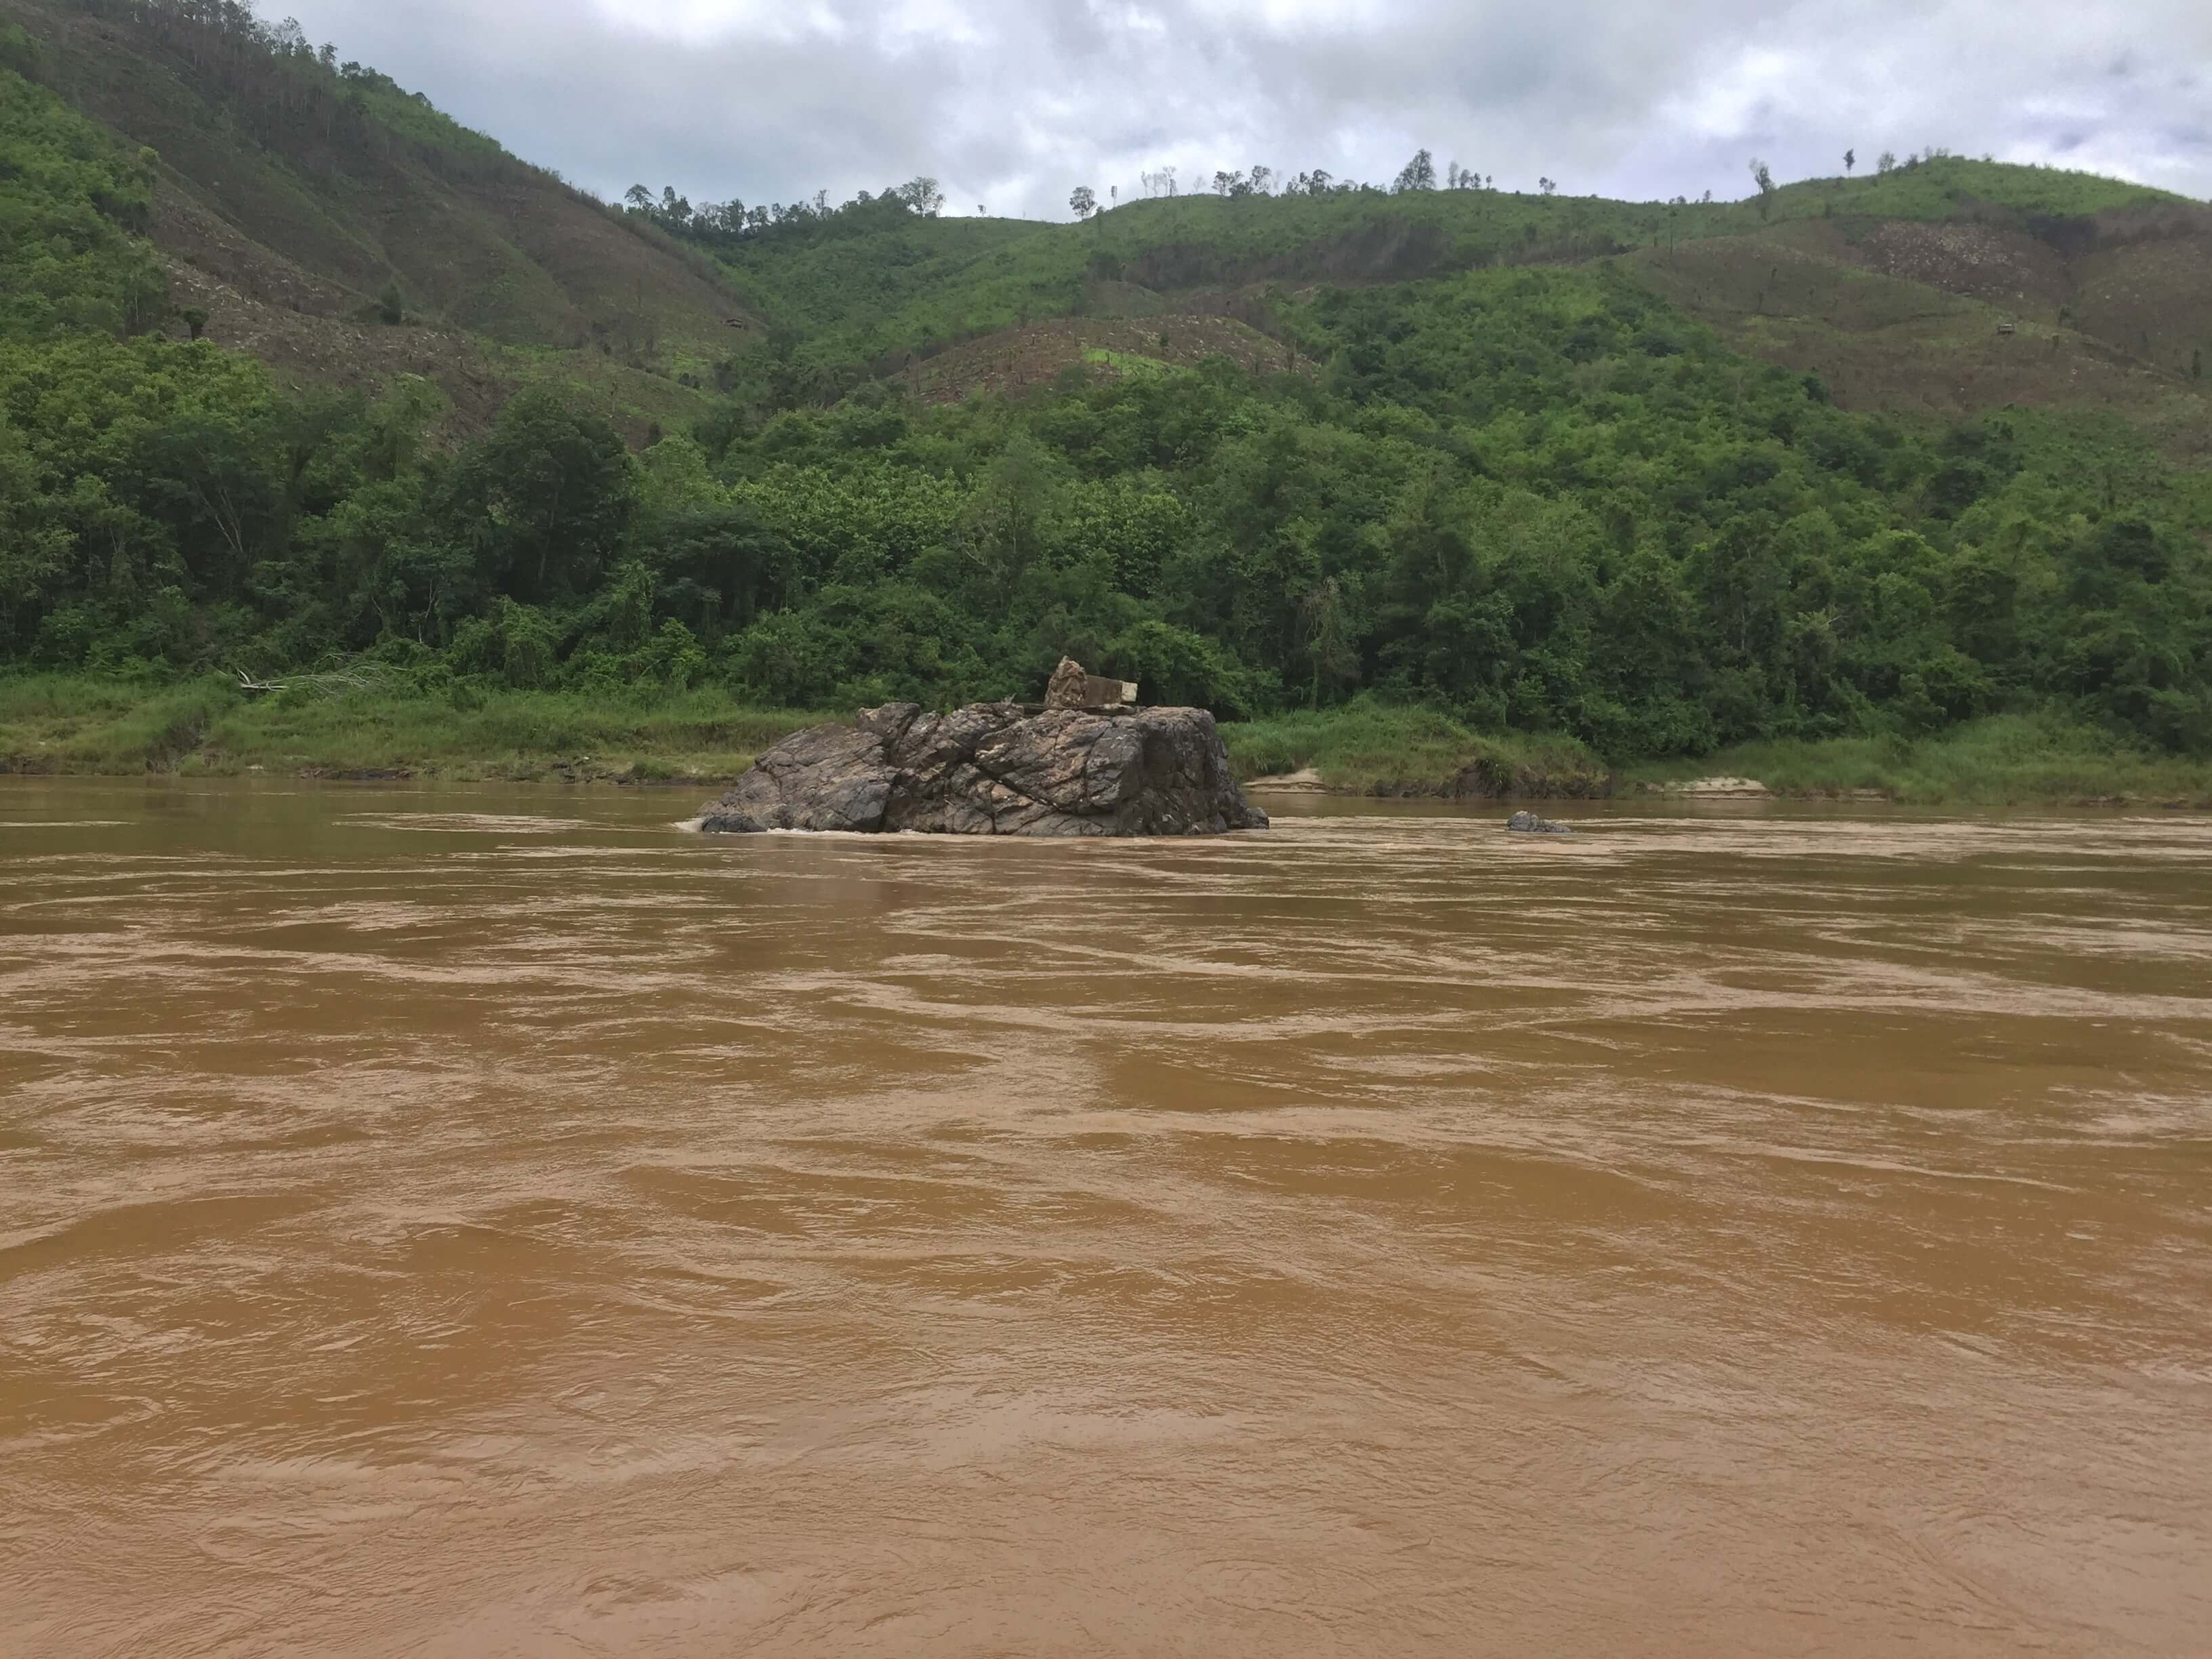 Outcropping on the Mekong River in Laos